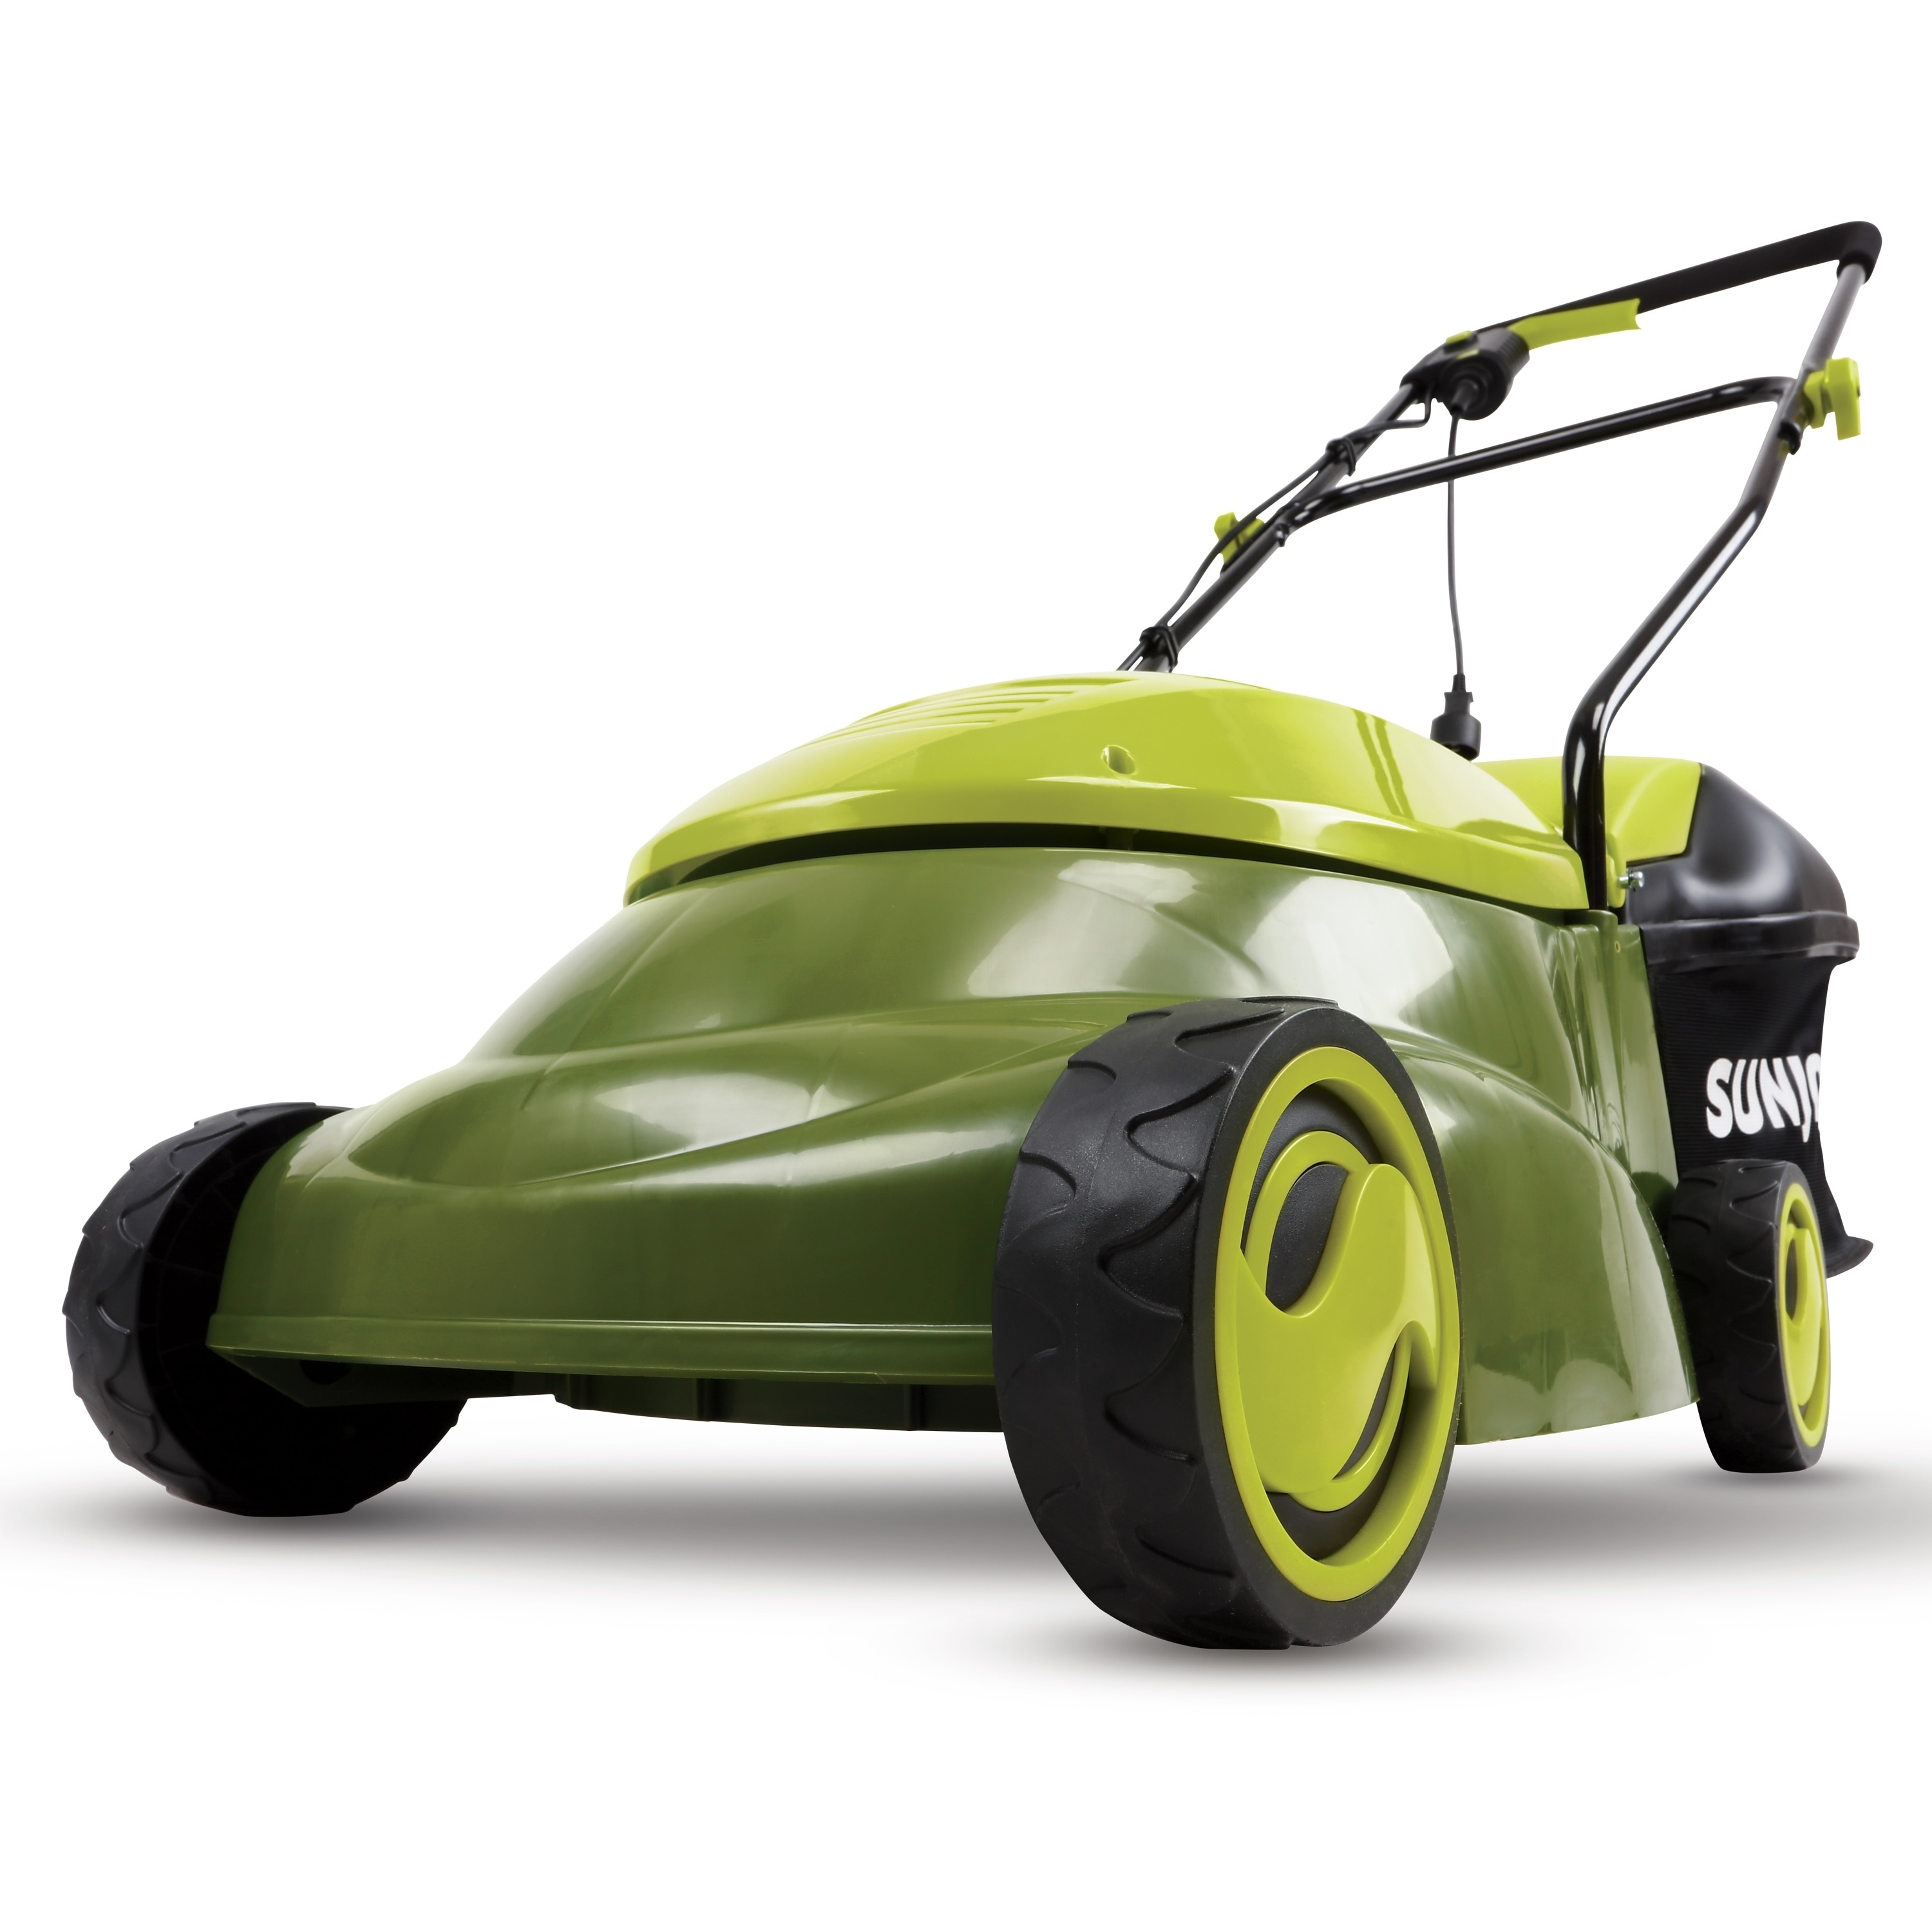 Buy Lawn Mowers  Trimmers Online at Overstock Our Best Yard Care